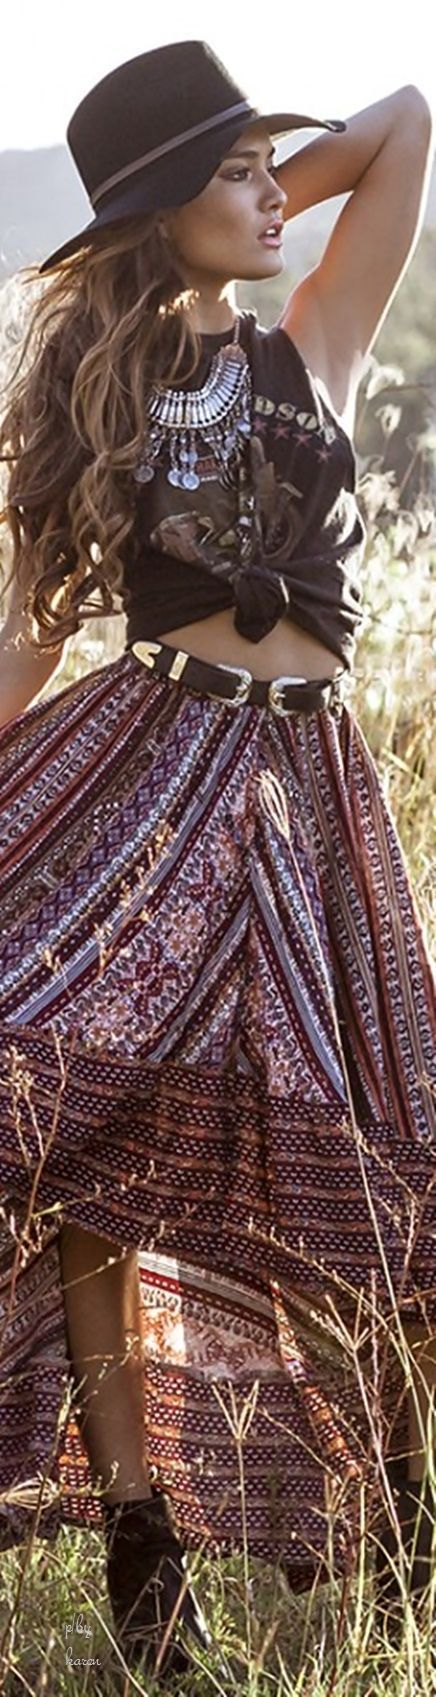 Must-Have Items for a Bohemian Chic Wardrobe || Desert Lily Vintage || vintage fashion. sustainable fashion. eco fashion. retro. bold and empowered. boho chic. hippie chic